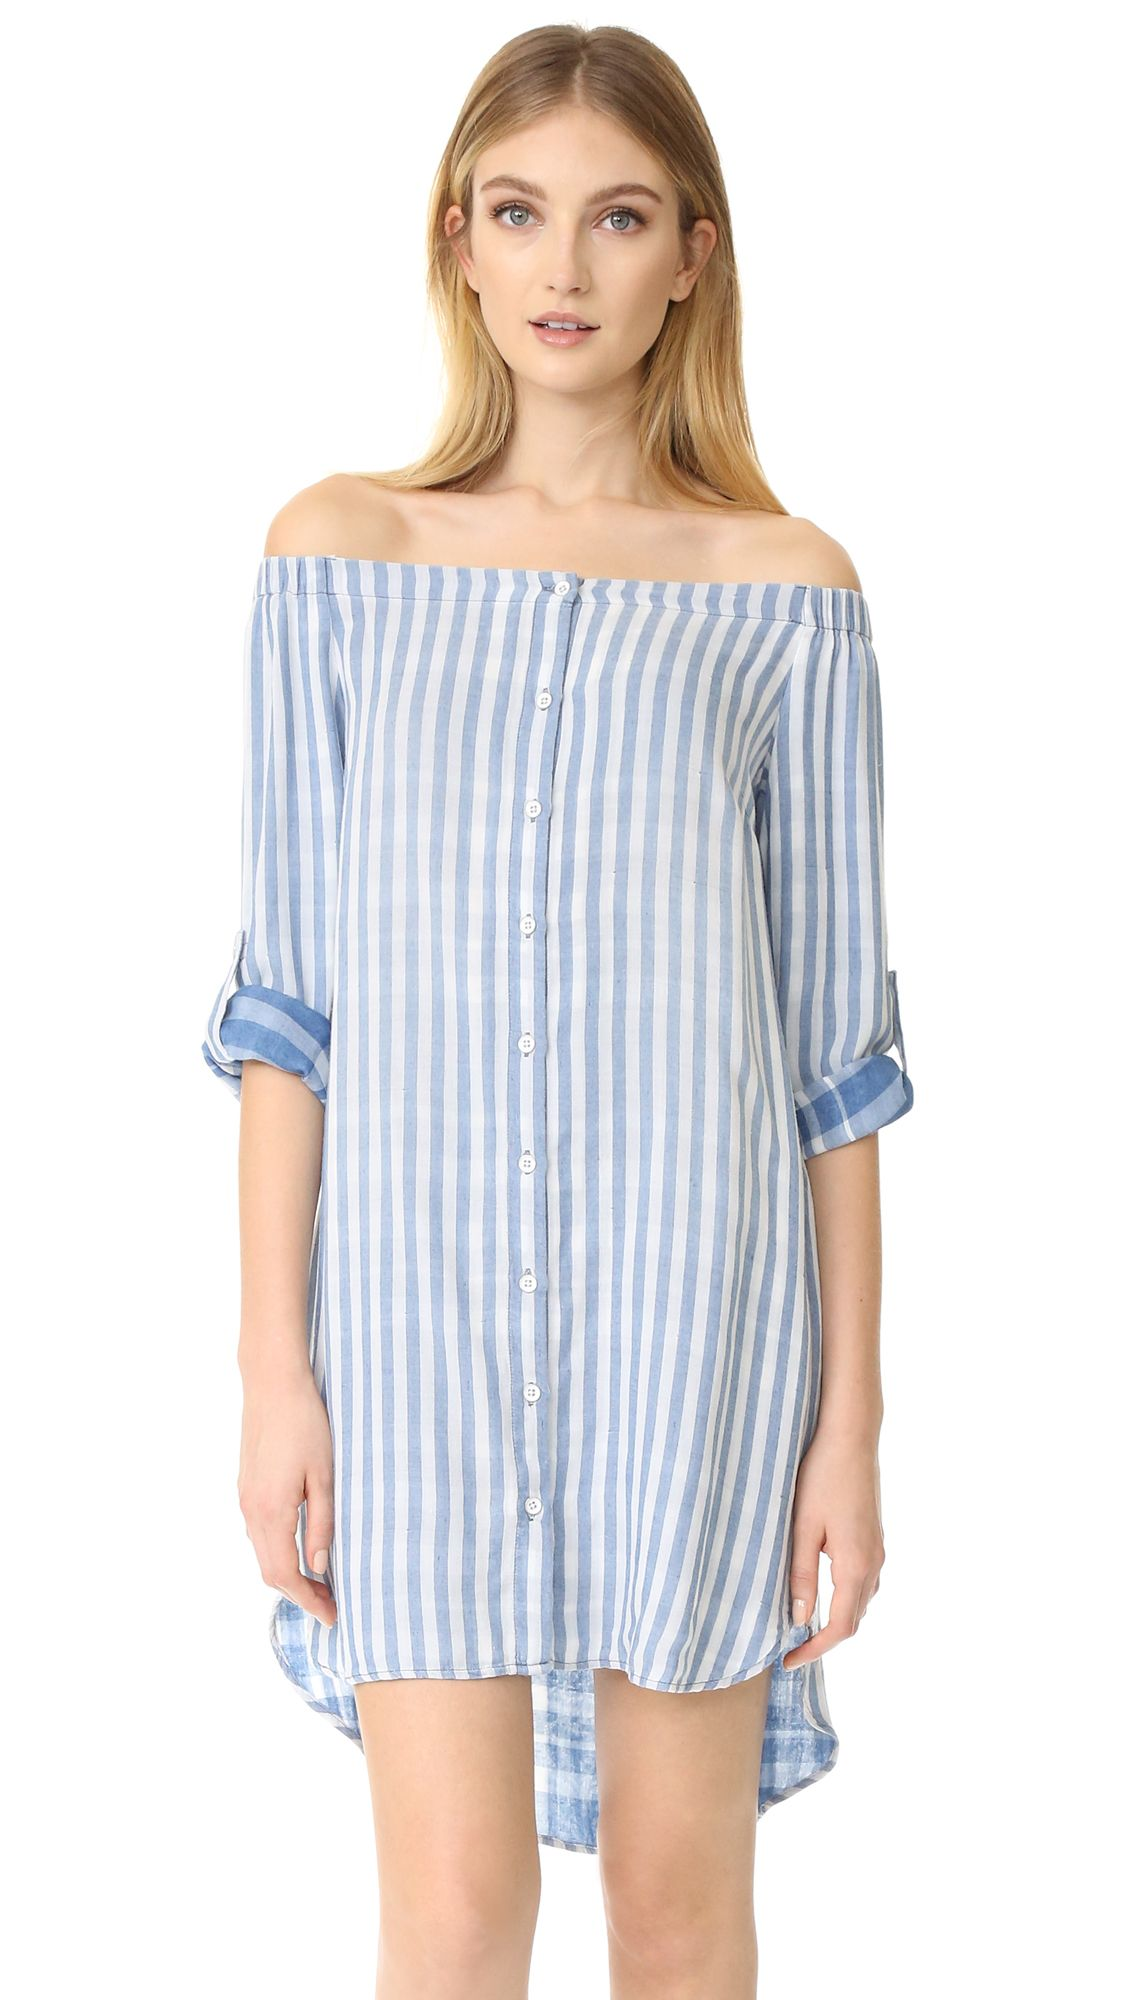 Bella Dahl Off Shoulder Button Front Dress - Marina Wash. A striped, off  shoulder Bella Dahl dress detailed with peek a boo plaid backing at the  sleeves.